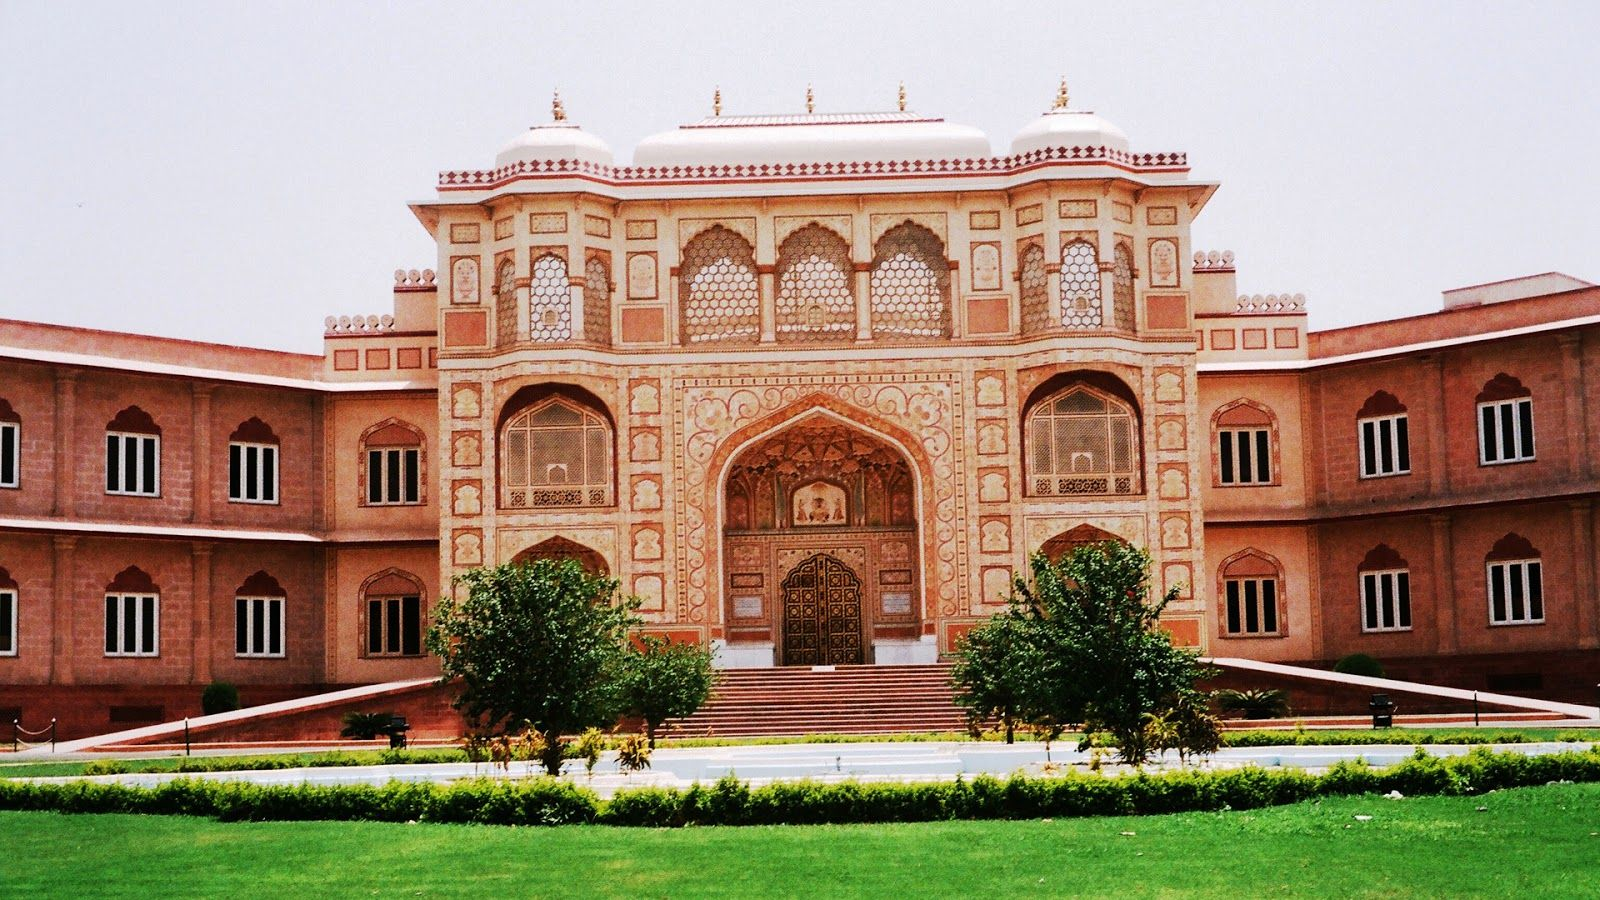 Click here to download in HD Format ee Jaipur India Hd Wallpapers